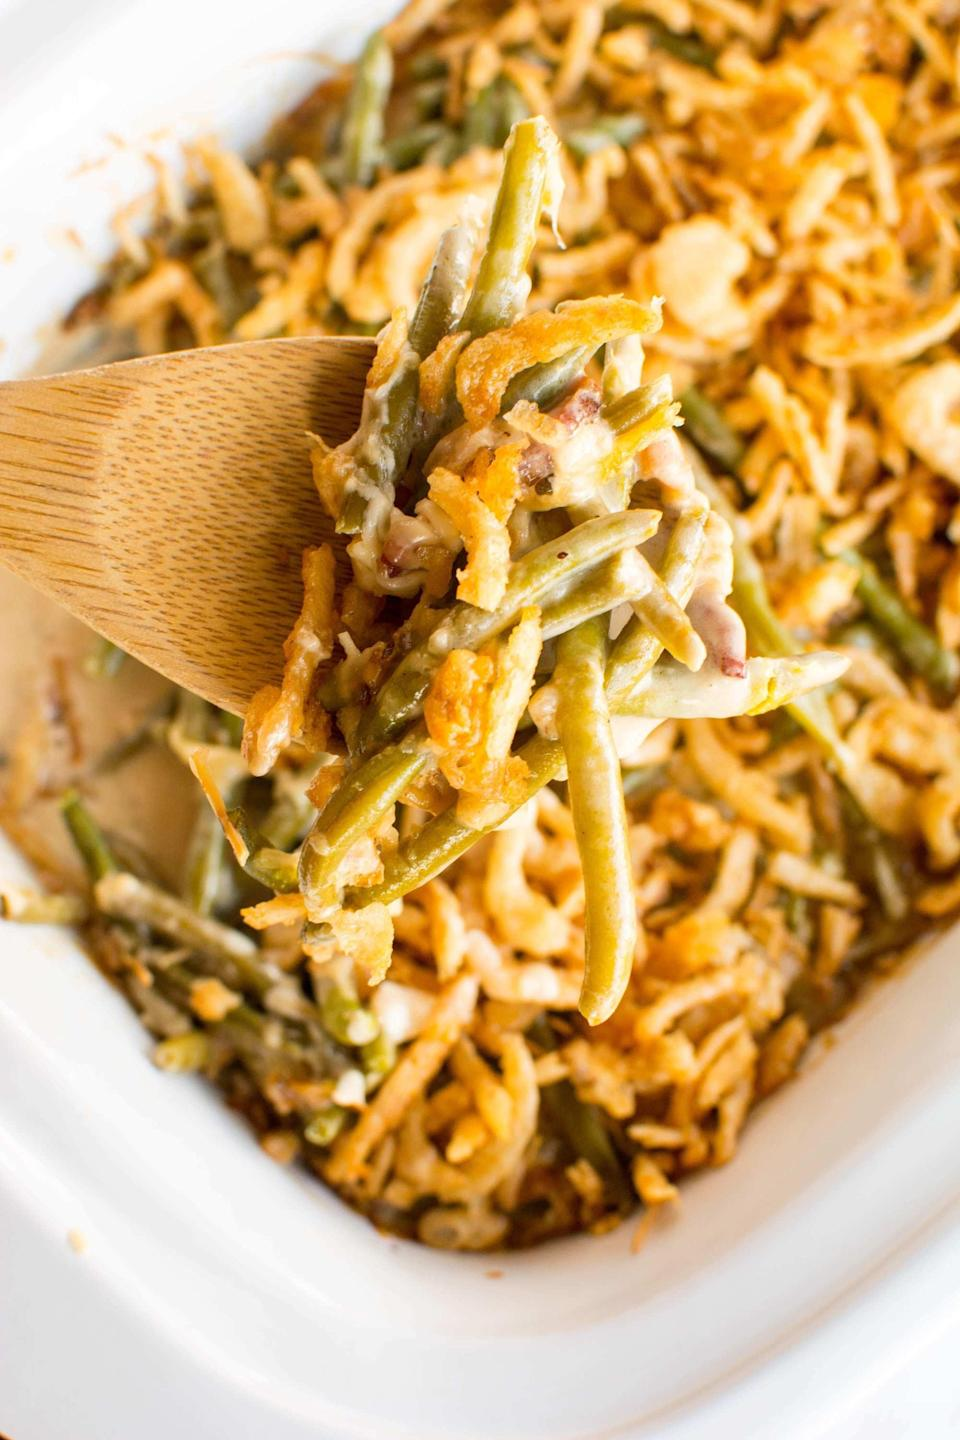 """<p>While you're making the rest of your holiday meal, you won't have to worry about your green bean casserole in your Crock-Pot.</p> <p><b>Get the recipe:</b> <a href=""""https://slowcookergourmet.net/crockpot-green-bean-casserole-win-a-slow-cooker/"""" class=""""link rapid-noclick-resp"""" rel=""""nofollow noopener"""" target=""""_blank"""" data-ylk=""""slk:Crock-Pot green bean casserole"""">Crock-Pot green bean casserole</a></p>"""